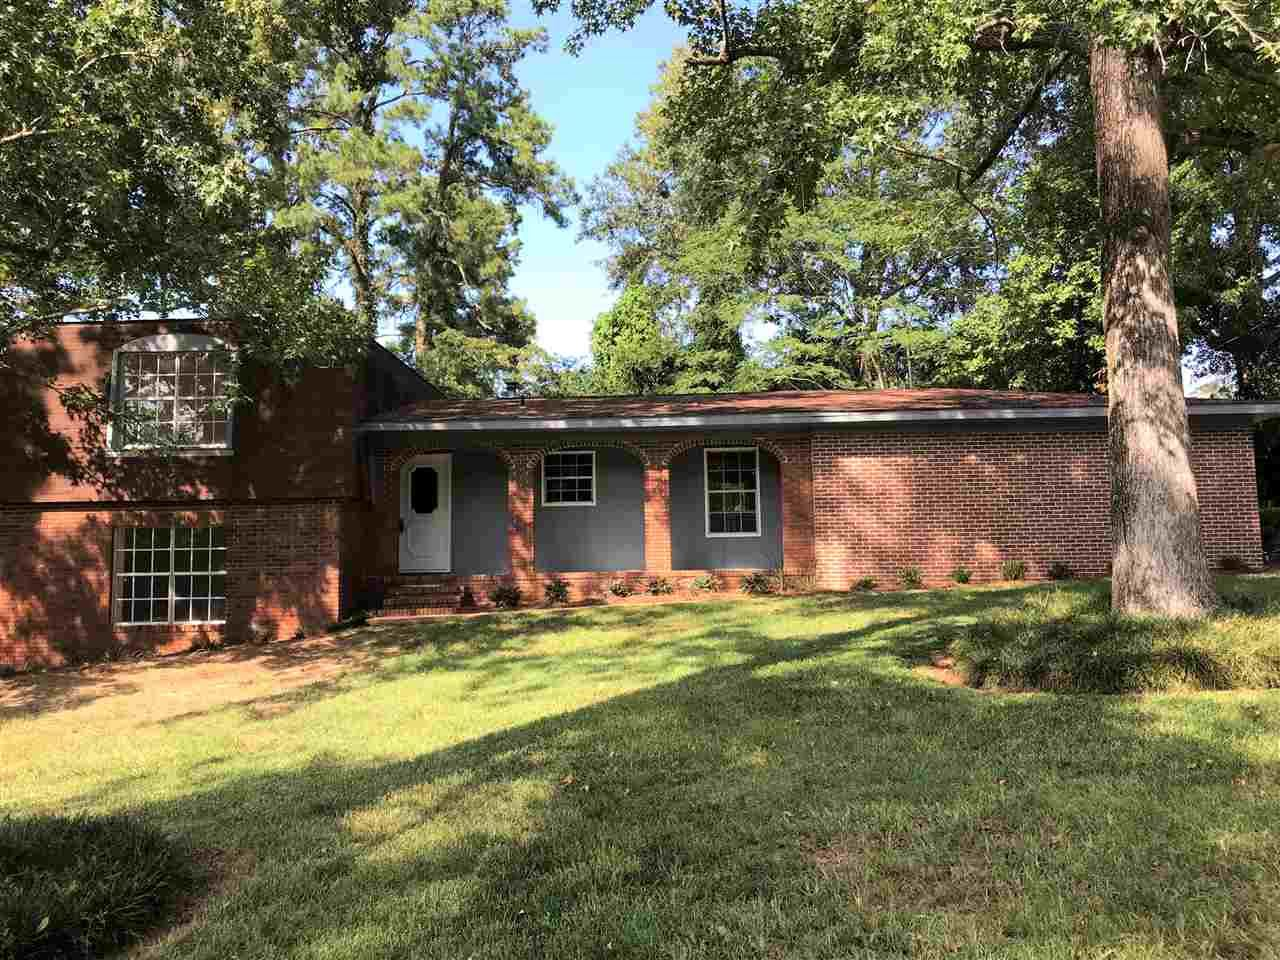 791 Victory Garden Drive, Tallahassee, FL 32301 - MLS#: 322493